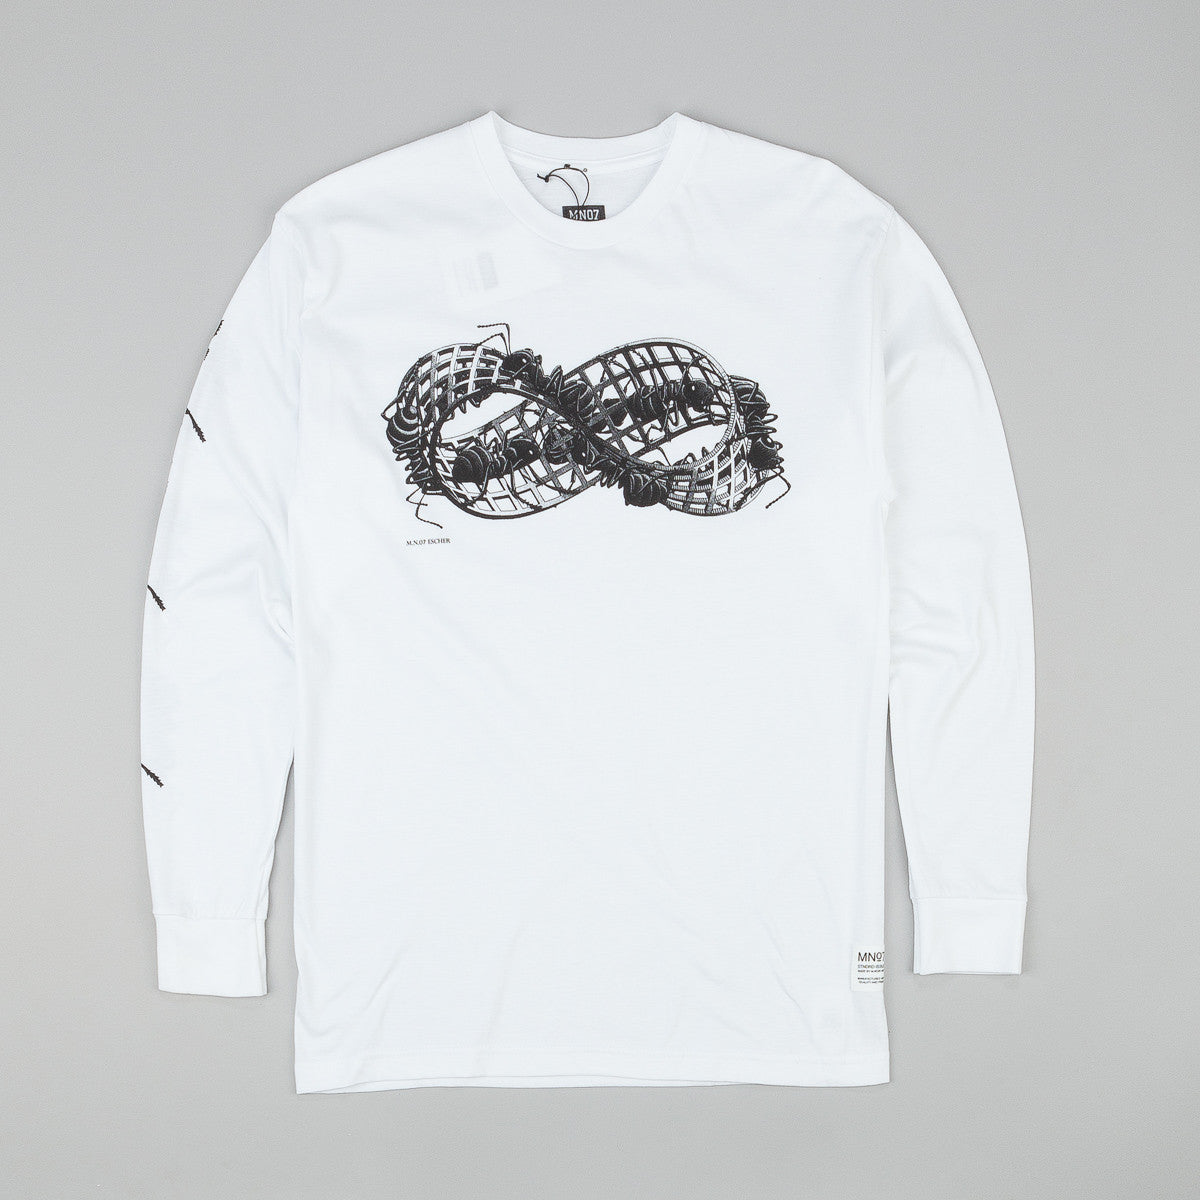 MN07 Ants Long Sleeve T-Shirt